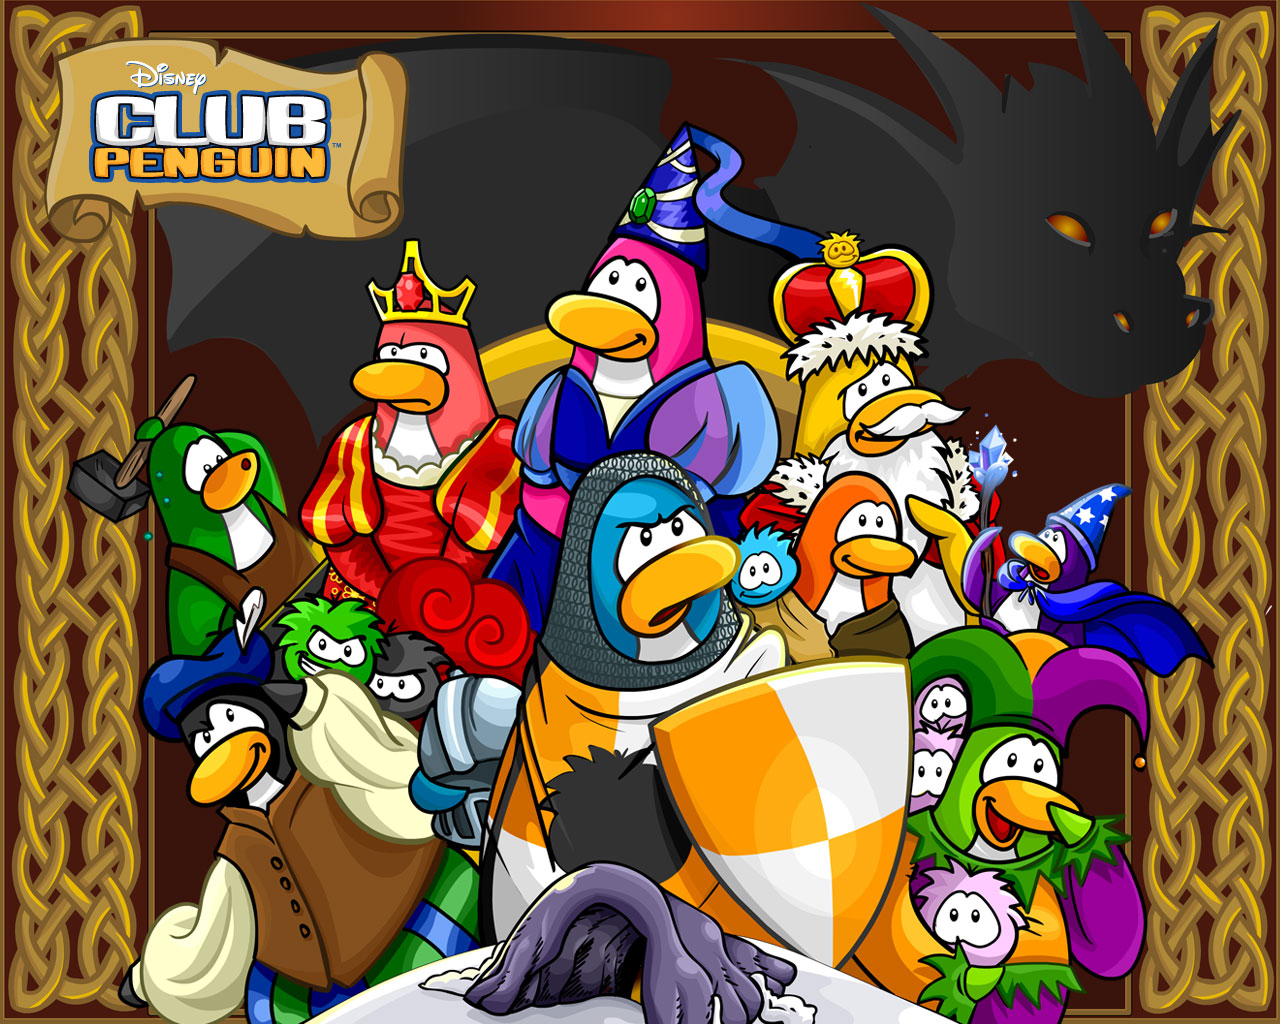 Club Penguin Wallpapers For Desktop 87 images in Collection Page 1 1280x1024